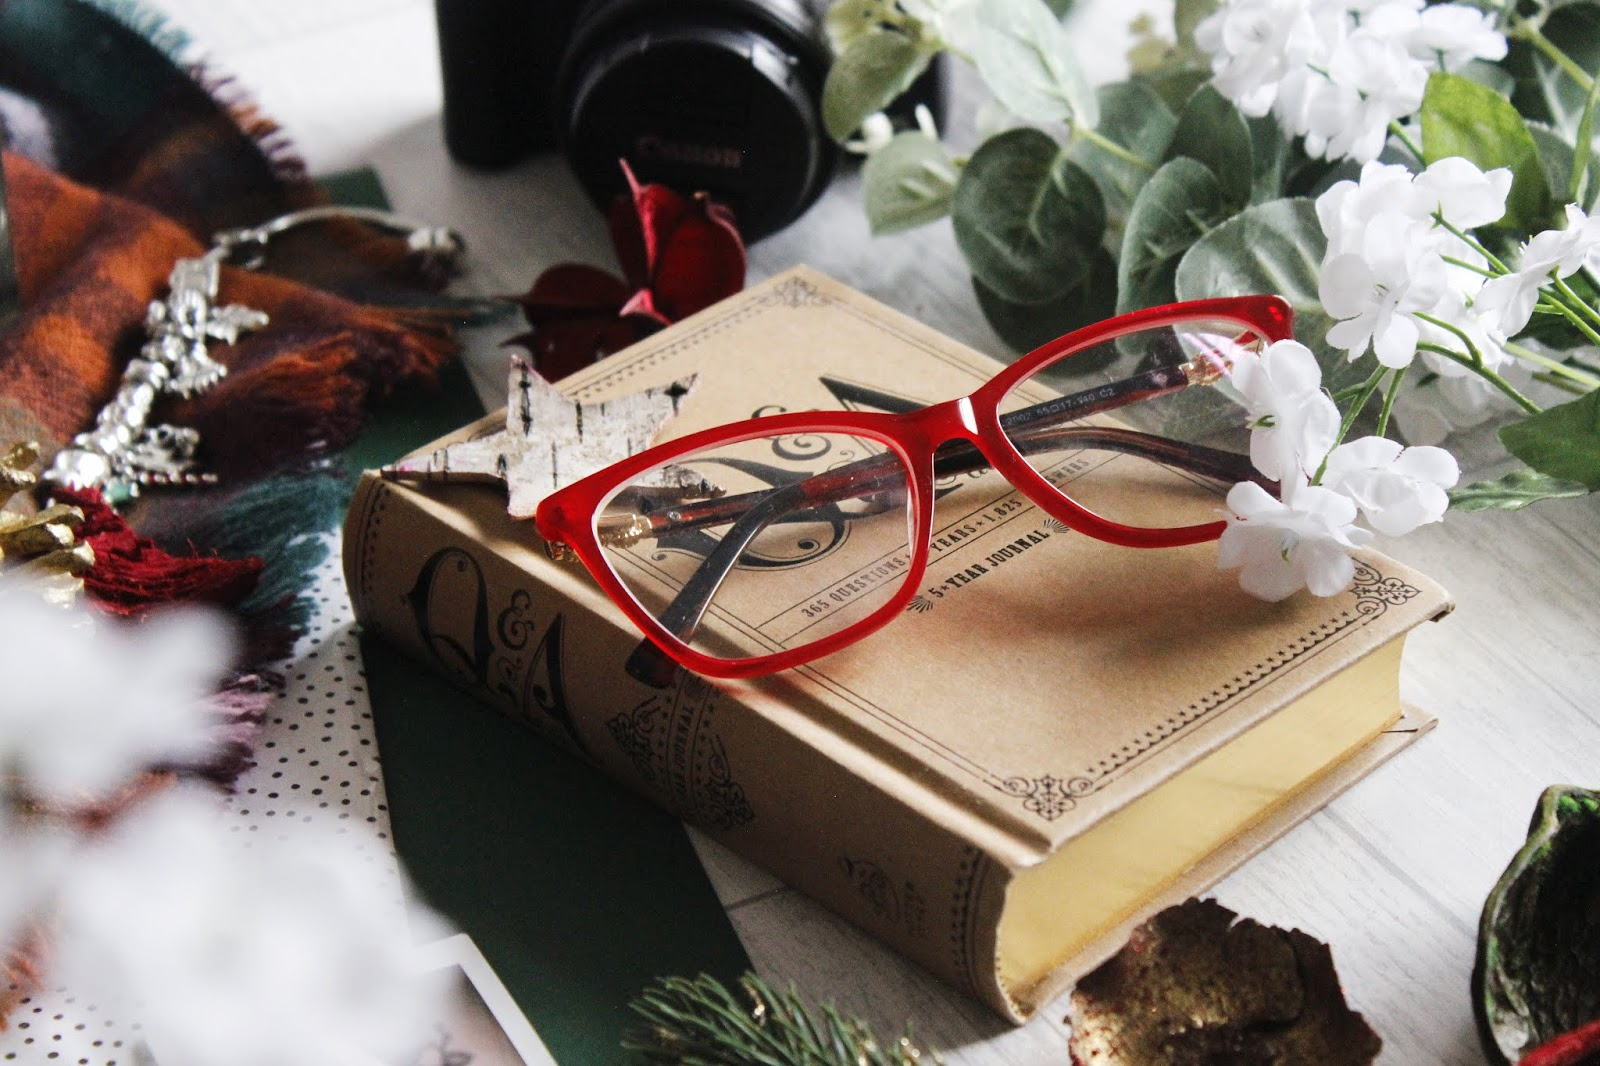 new frames with glassesshop.com - see the stars